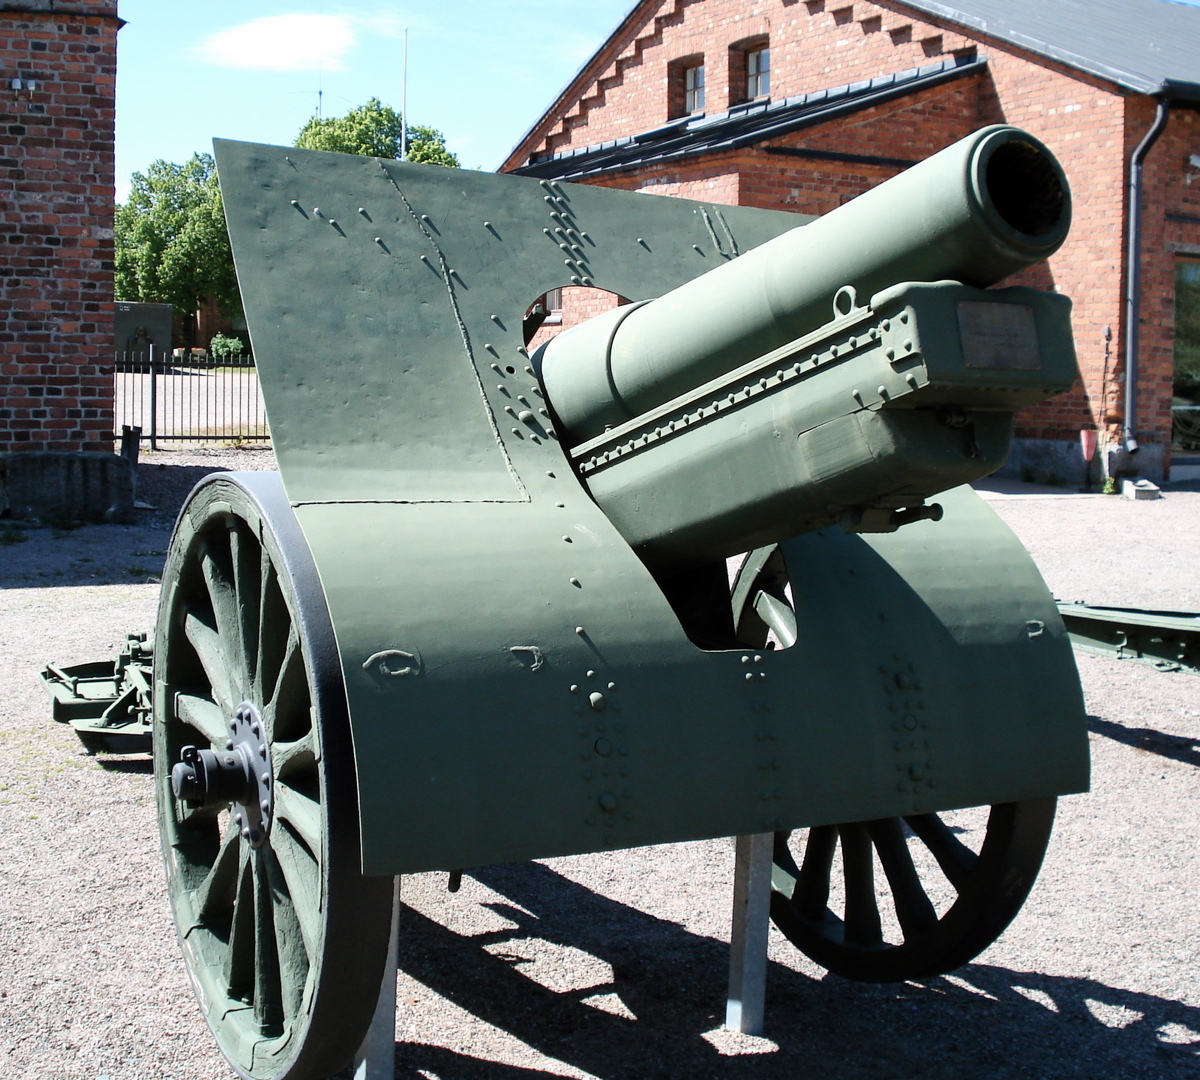 http://upload.wikimedia.org/wikipedia/commons/4/4a/152mm_m09-30_fortress_howitzer_schneider_01.jpg